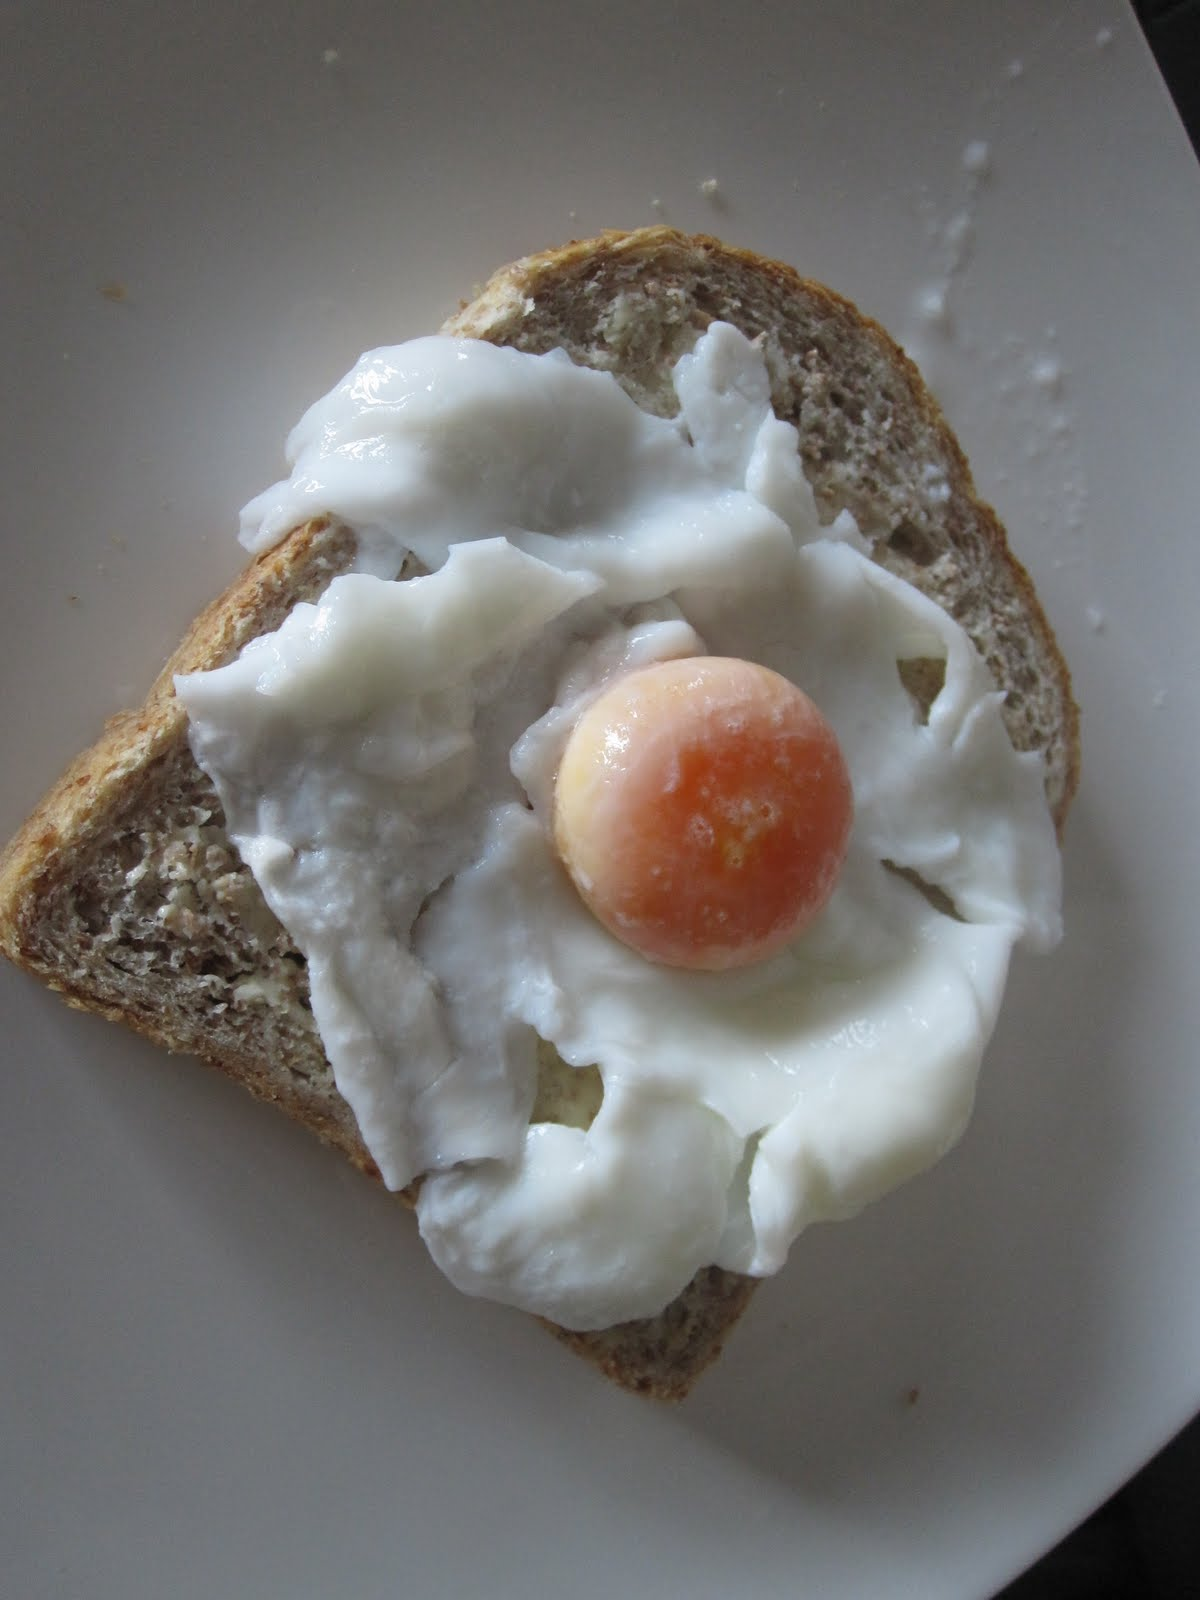 Bon Appetit!: The Perfect Poached Egg (or not!)